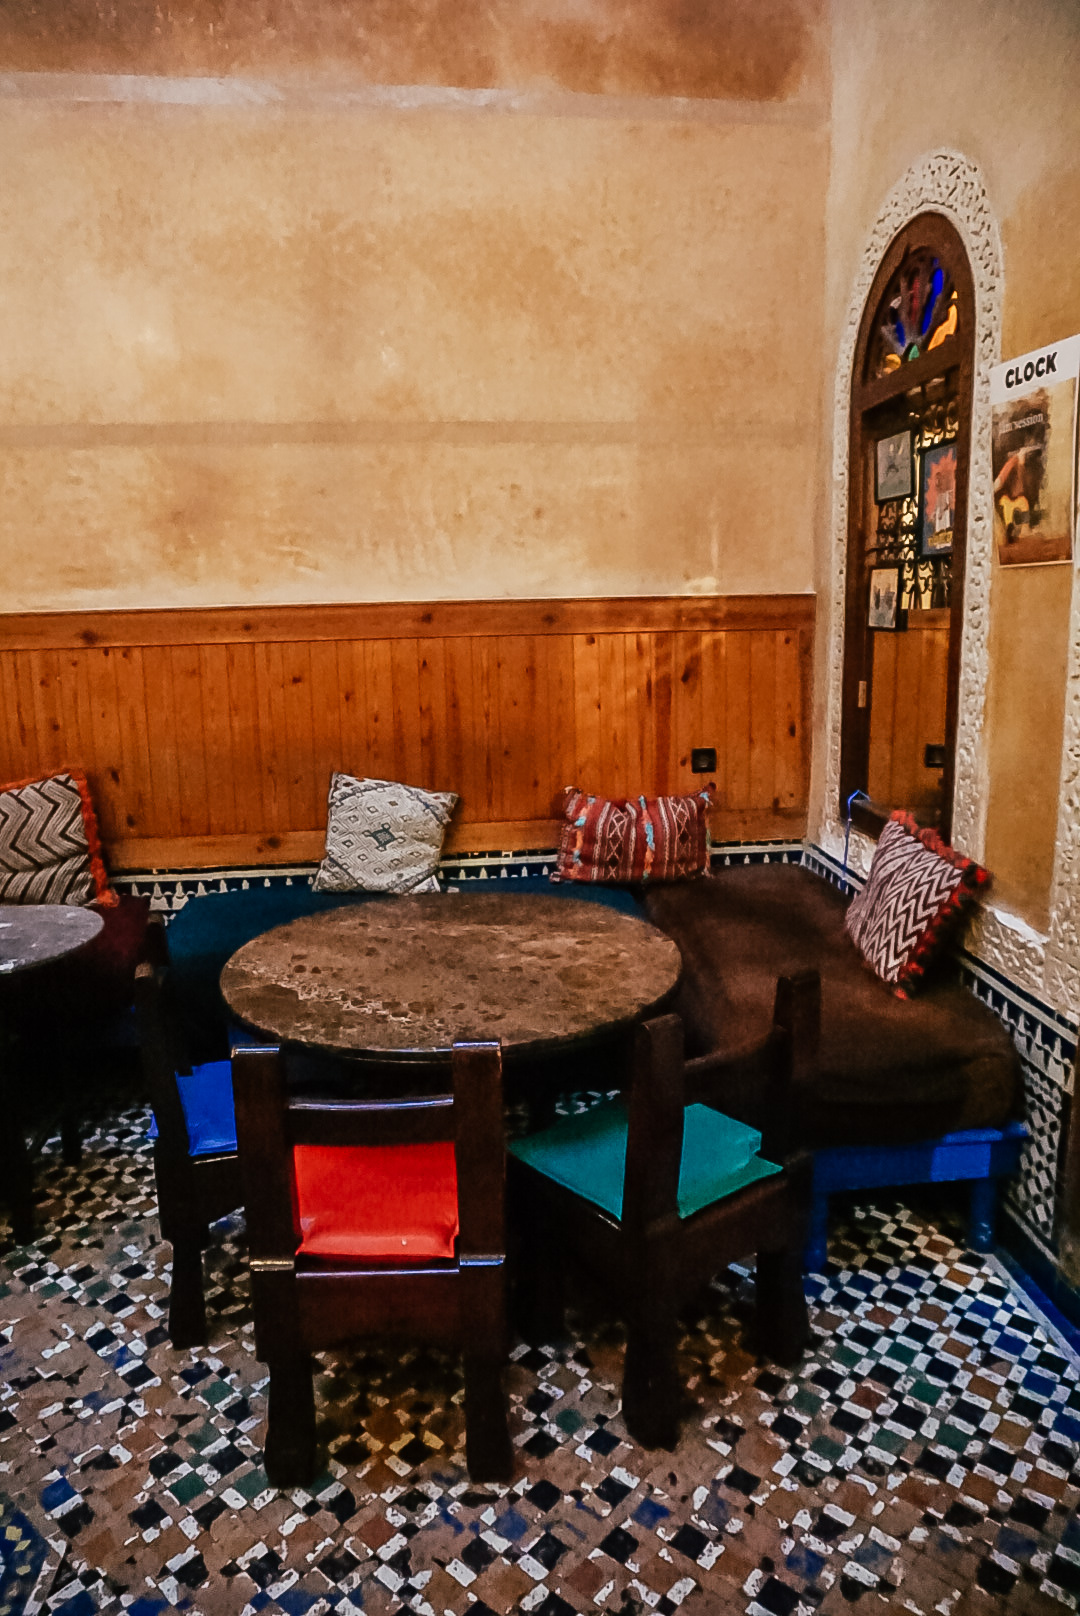 Fes, Morocco what to do - dining at Cafe Clock